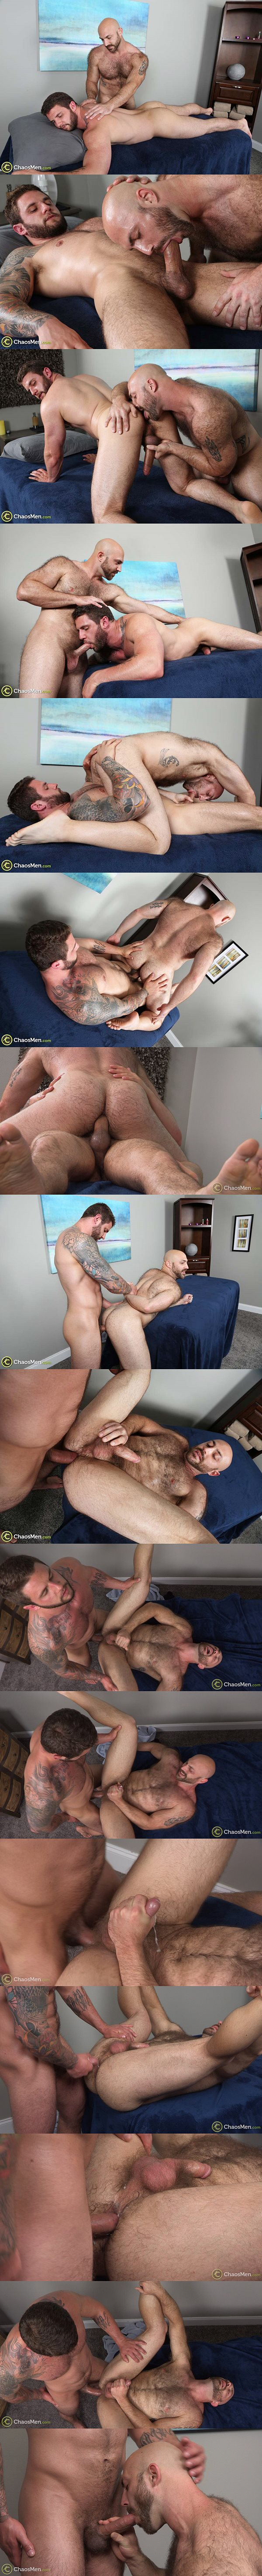 Hot straight muscle hunk Ronin breeds sexy hairy stud Tatum Parks at Chaosmen 02